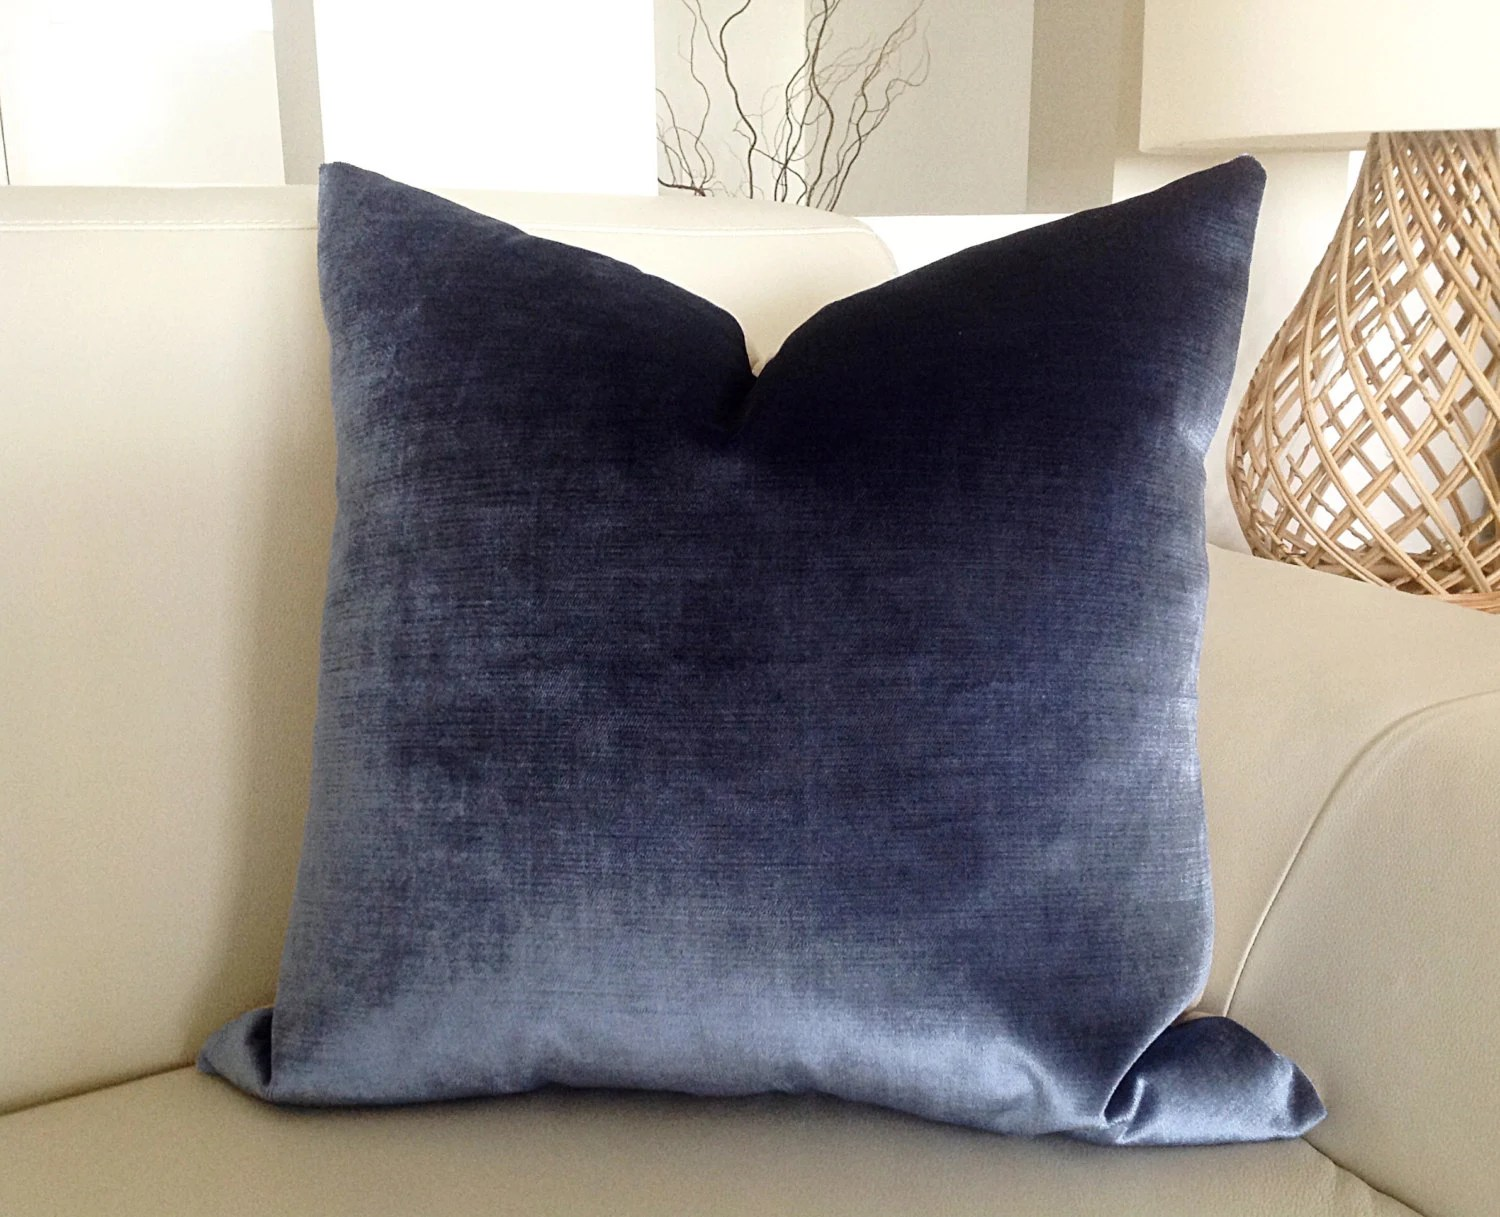 Blue Velvet Cushion Velvet Cushions Navy Velvet Pillows Grey Velvet Cushion